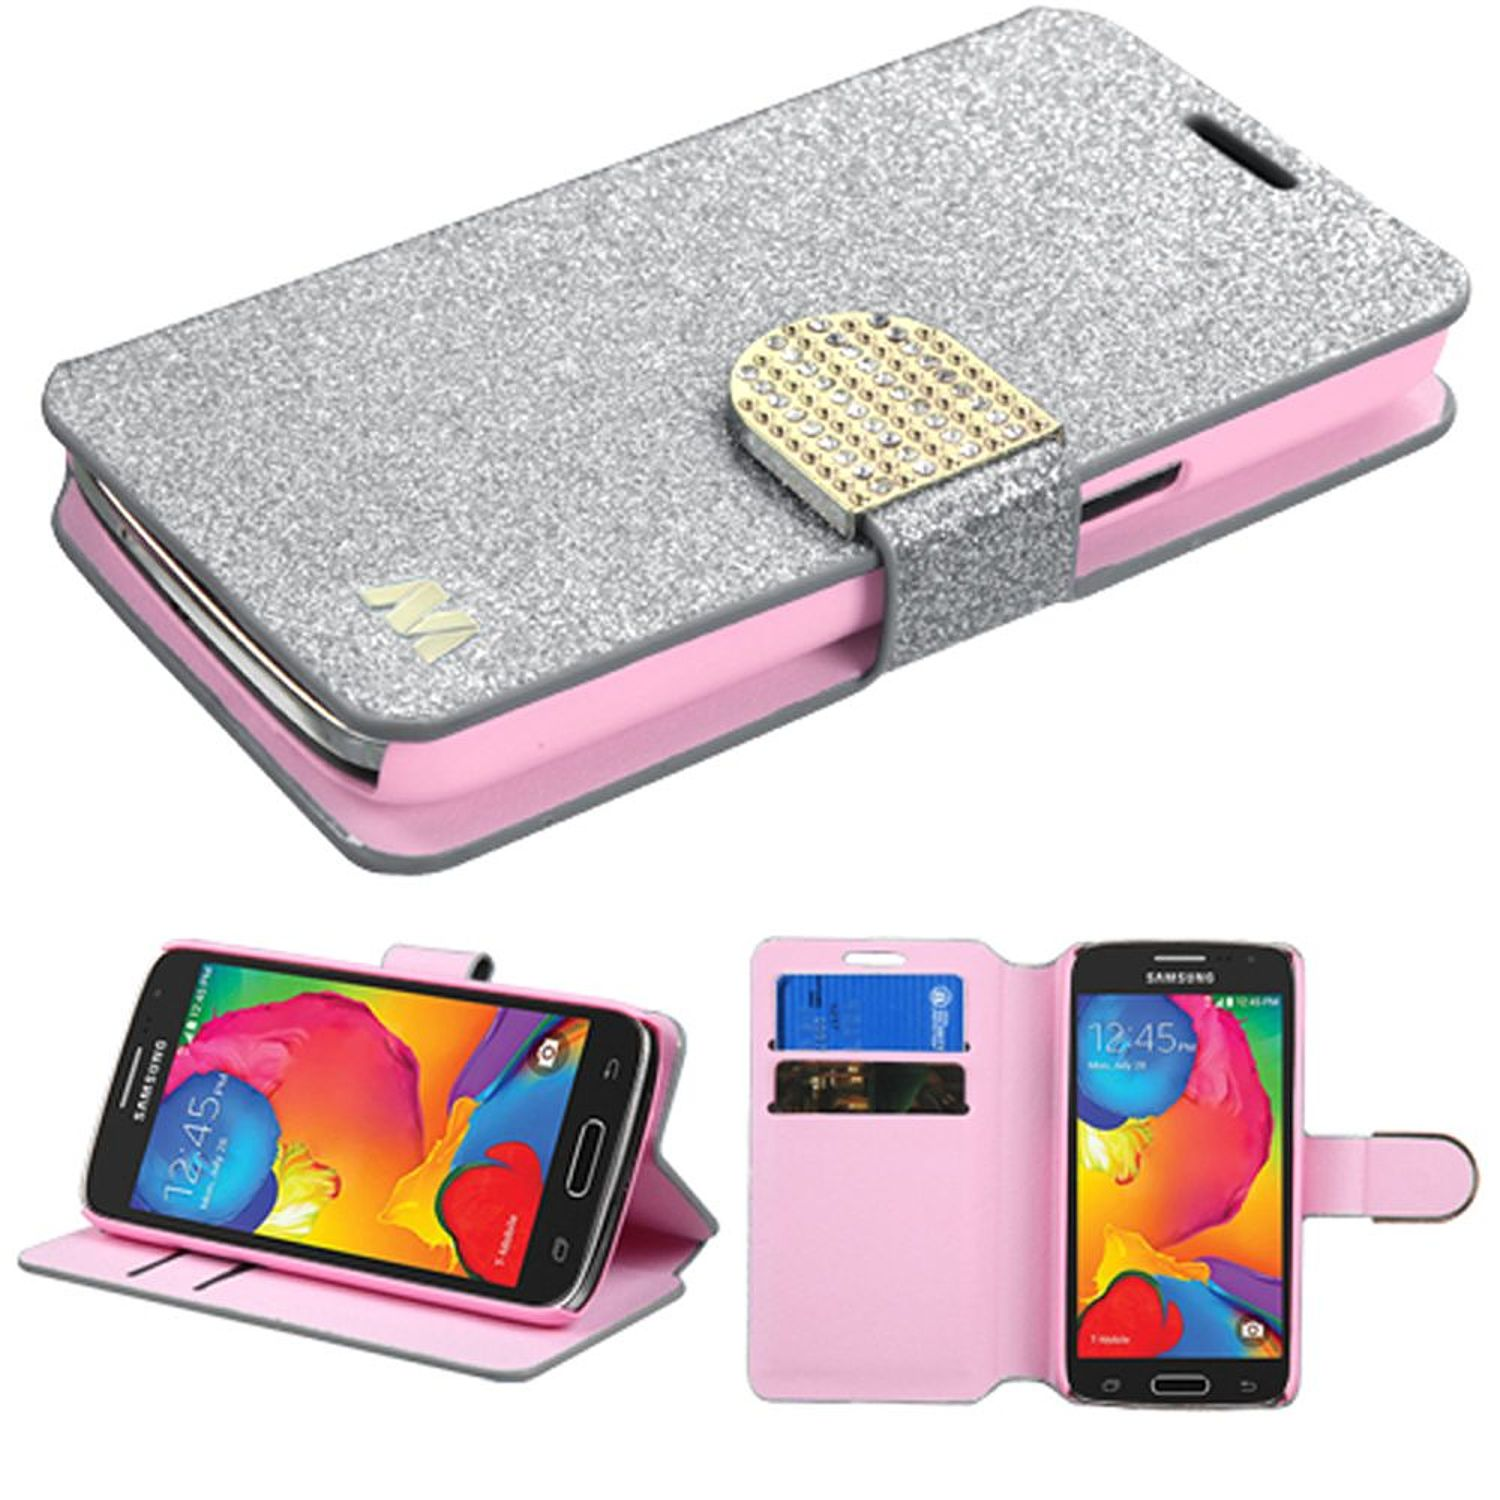 Insten Flip Leather Wallet Glitter Cover Case w/stand/card slot/Diamond For Samsung Galaxy Avant - Silver/Gold